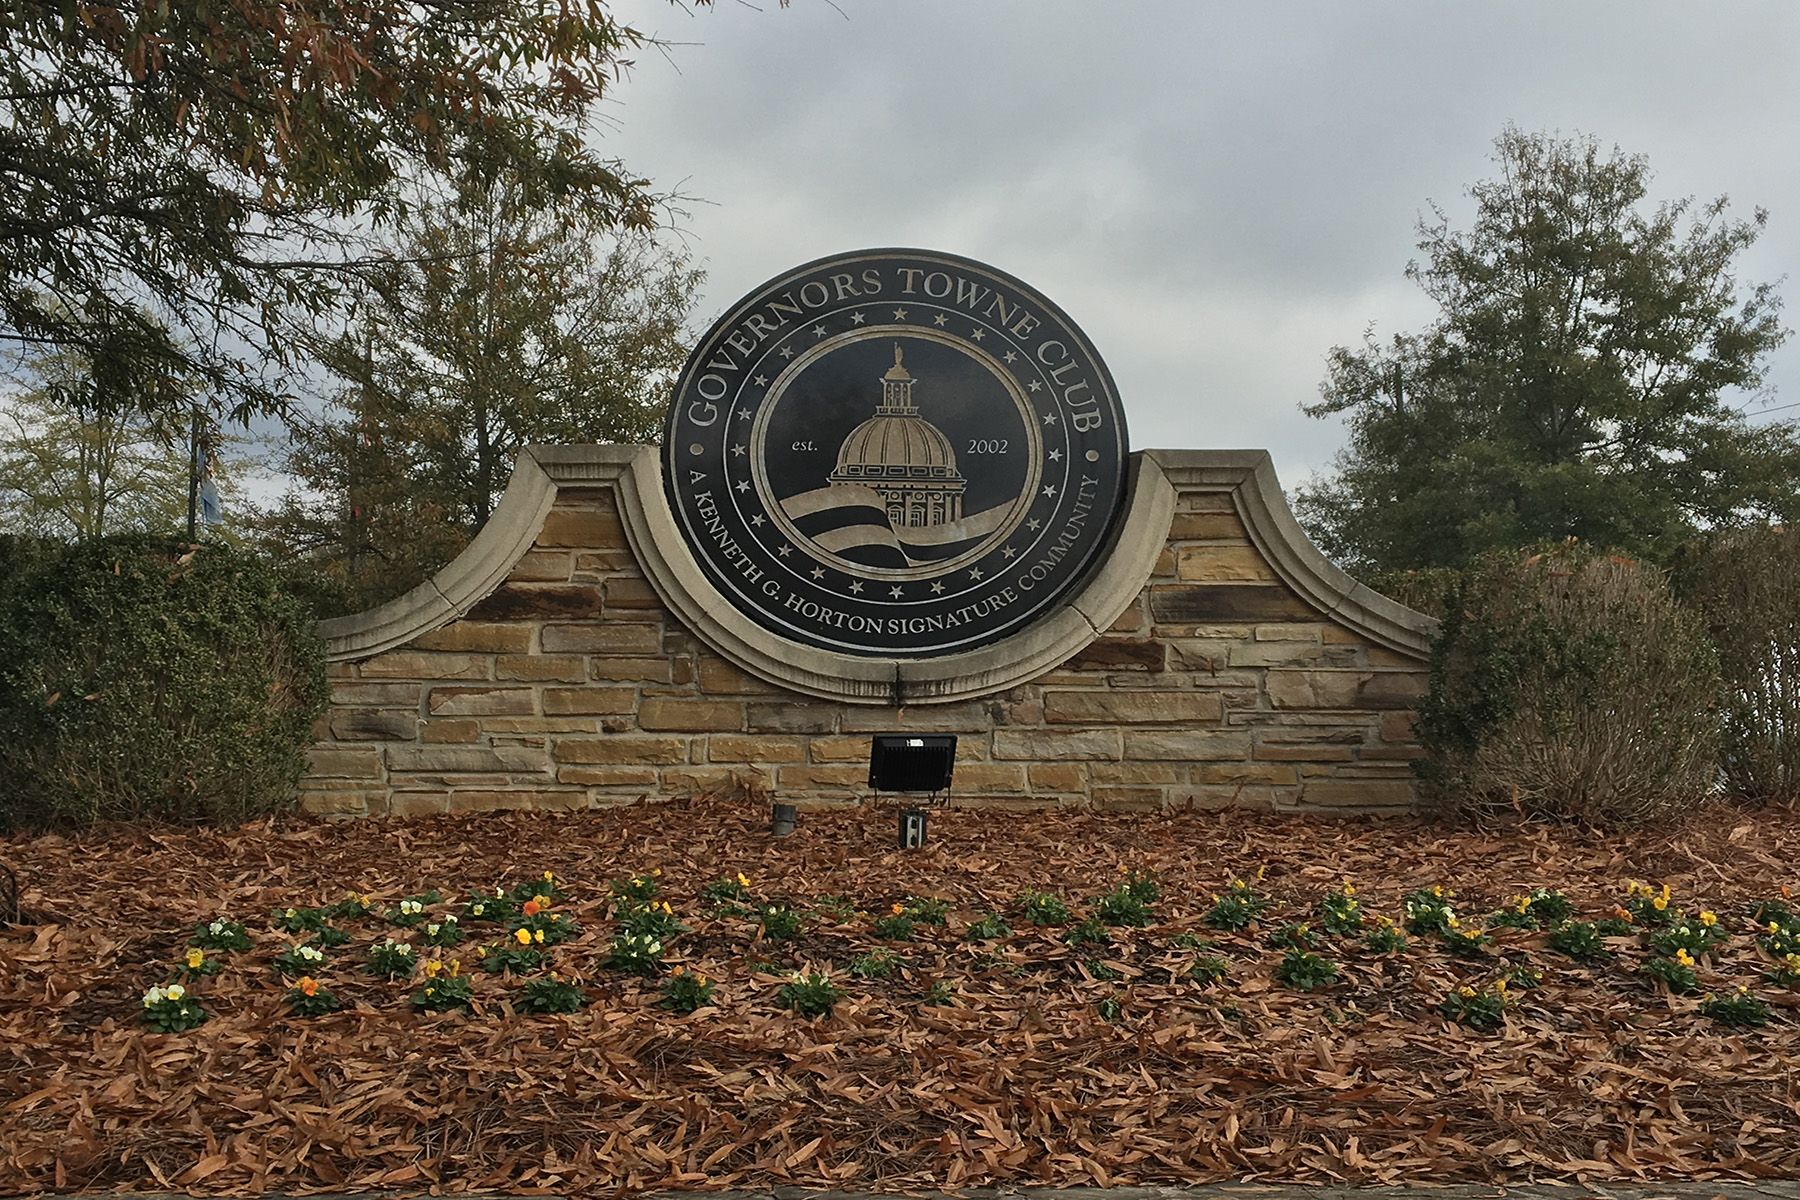 Terreno para Venda às Golf Course Lot Located In One of Atlanta's Most Prestigious Communities 6323 Howell Cobb Court, Acworth, Geórgia, 30101 Estados Unidos